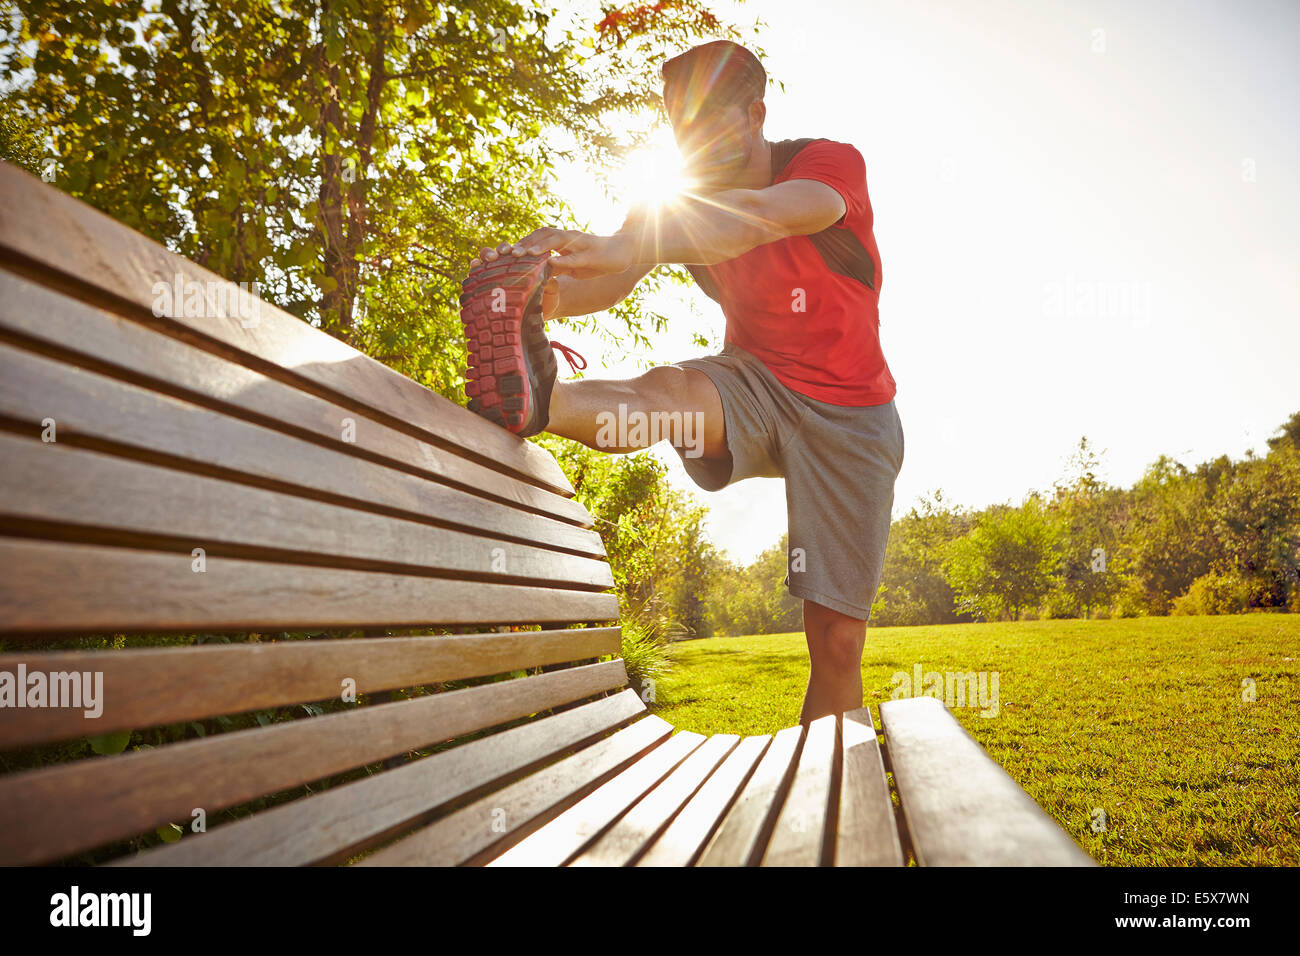 Young male runner stretching legs on park bench - Stock Image